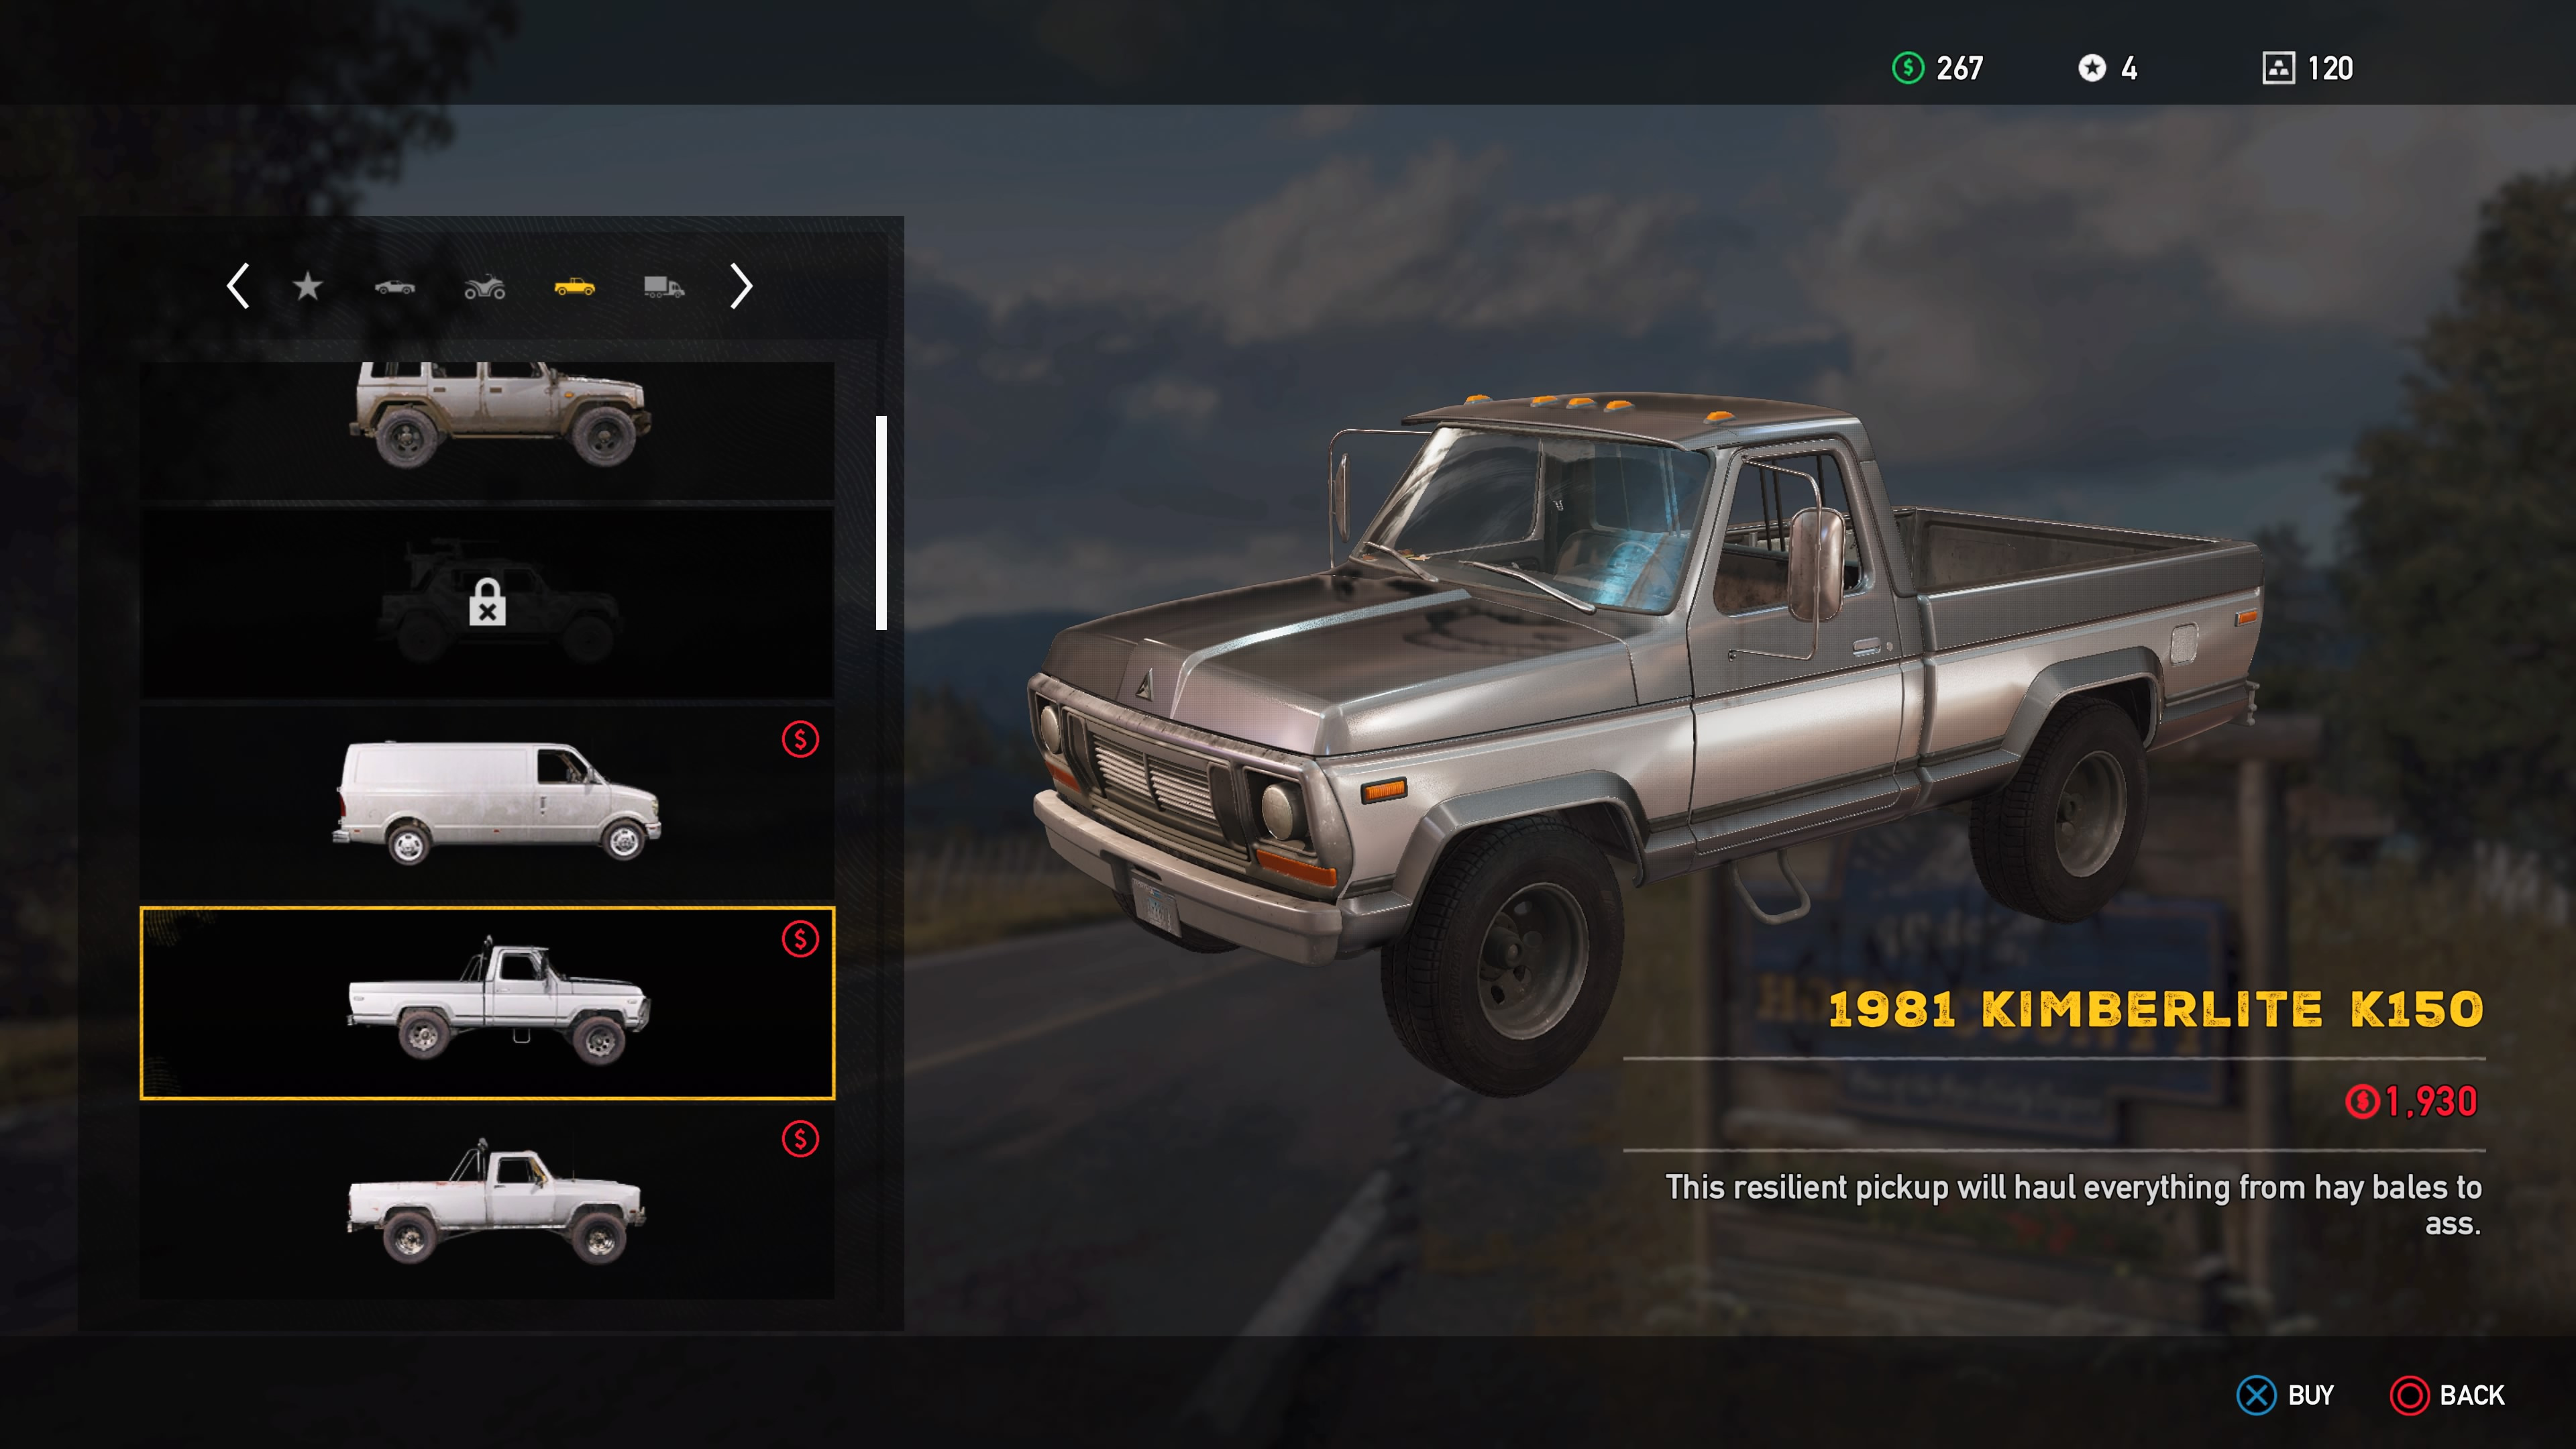 Most Reliable Used Trucks >> Far Cry 5 Land Vehicles List: All Unlockable Automobiles, Recreational, Trucks & Vans, and Heavy ...